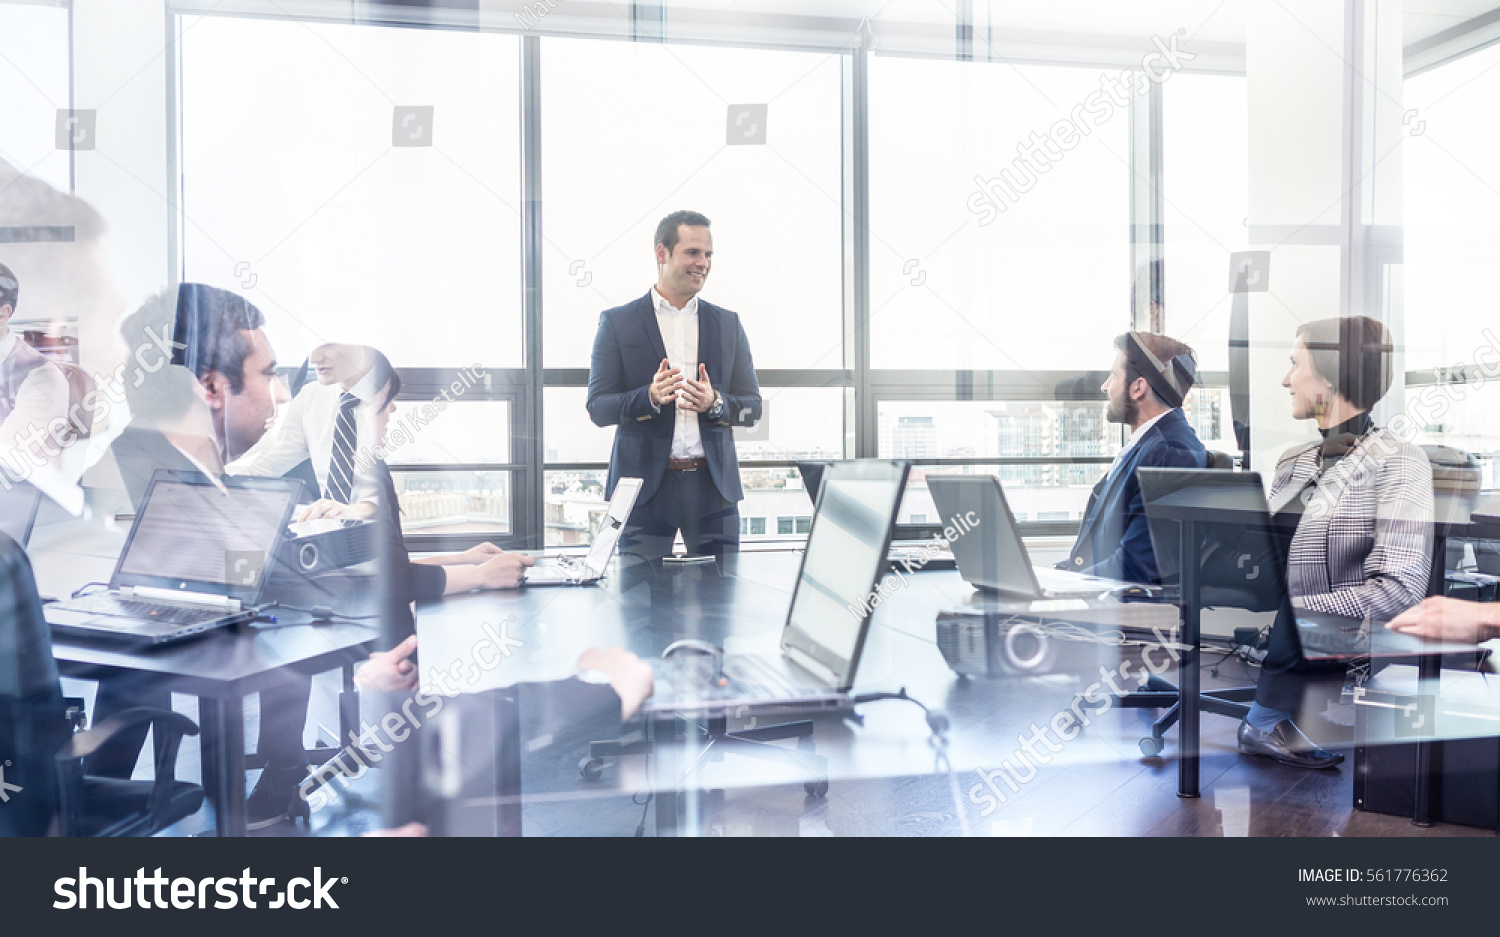 Successful team leader and business owner leading informal in-house business meeting. Businessman working on laptop in foreground. Business and entrepreneurship concept. #561776362